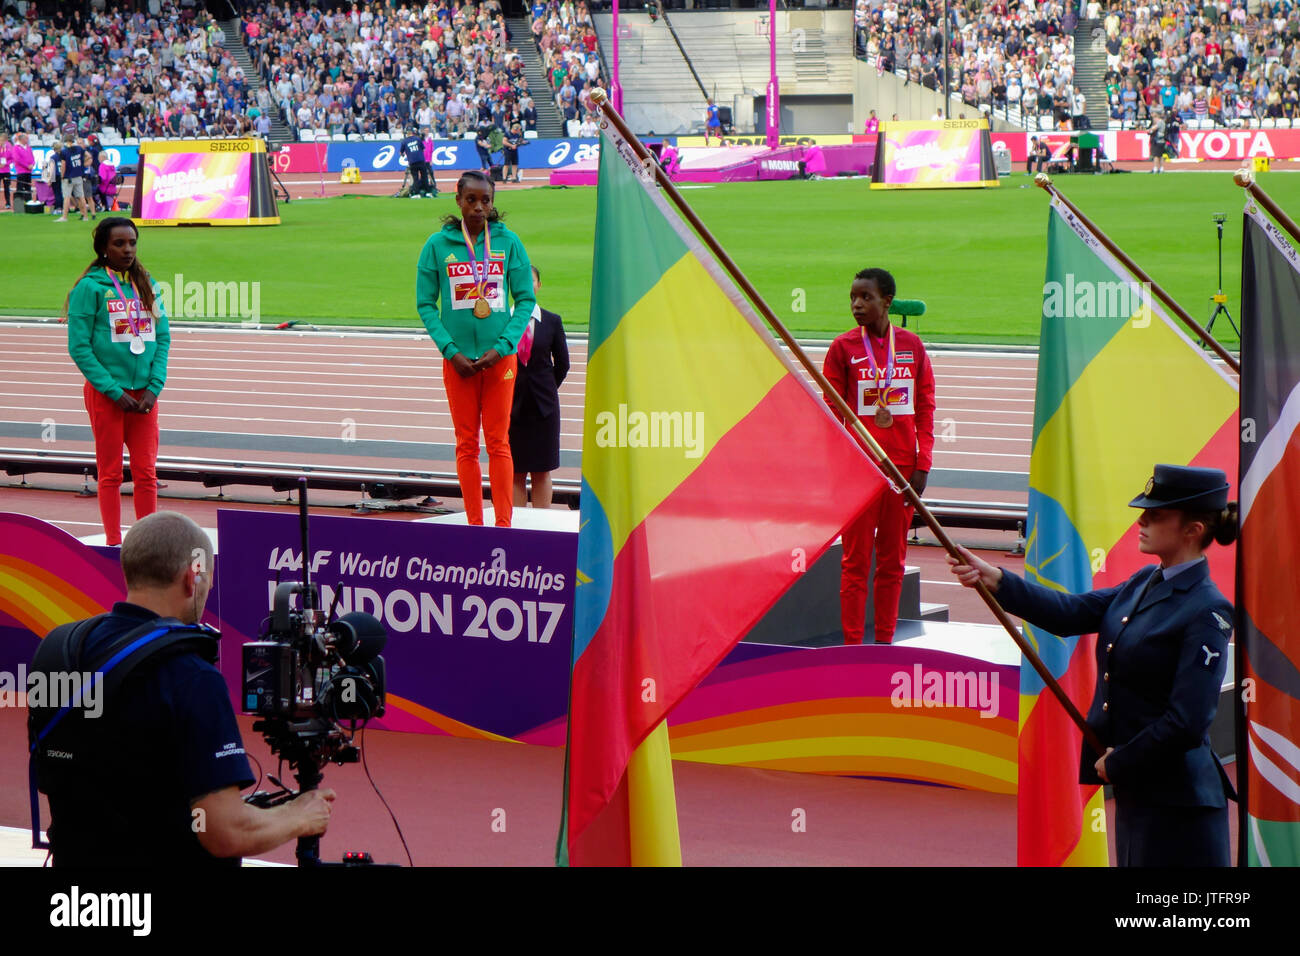 Tirunesh Dibaba of Ethiopia, silver, Almaz Ayana of Ethiopia, gold and Agnes Jebet Tirop of Kenya, bronze at IAAF World Championships London 2017. - Stock Image